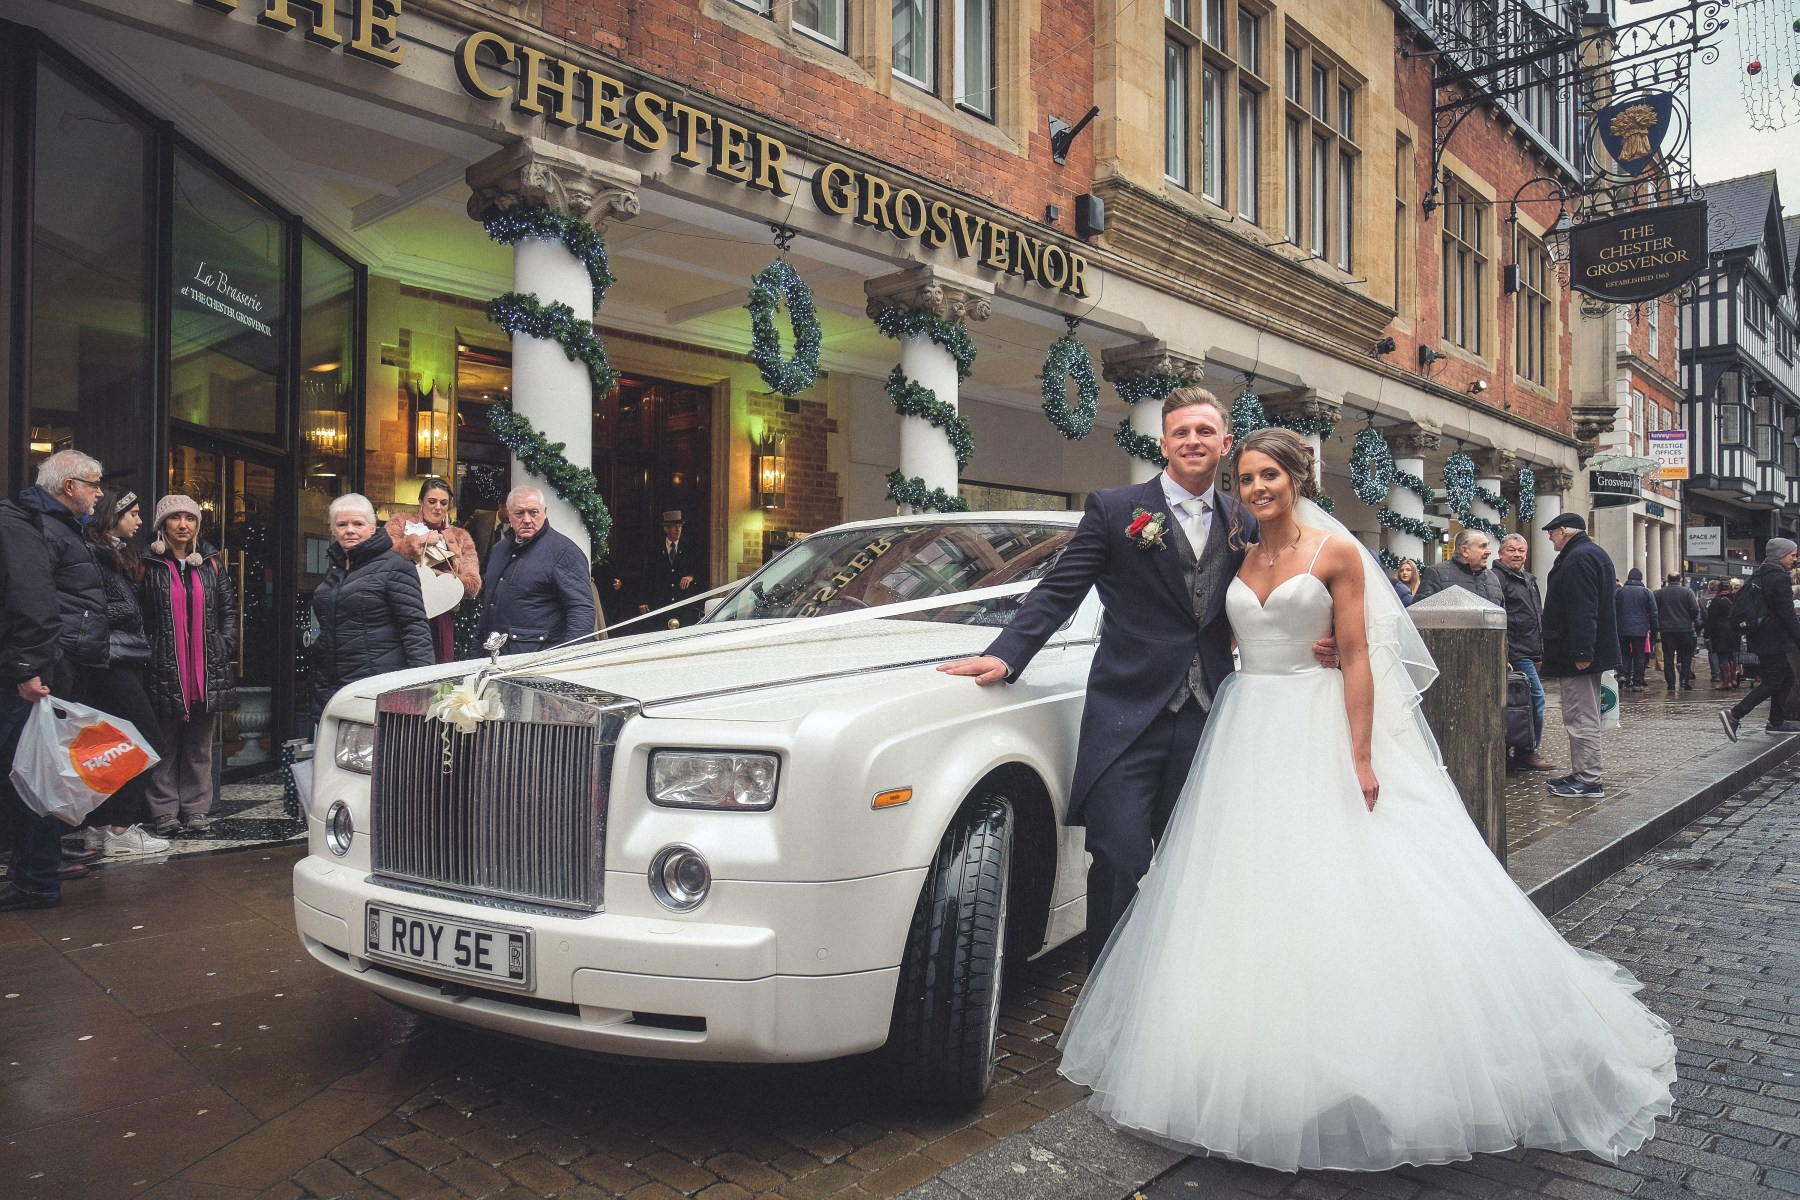 Bride and groom with wedding car at Chester Grosvenor Hotel